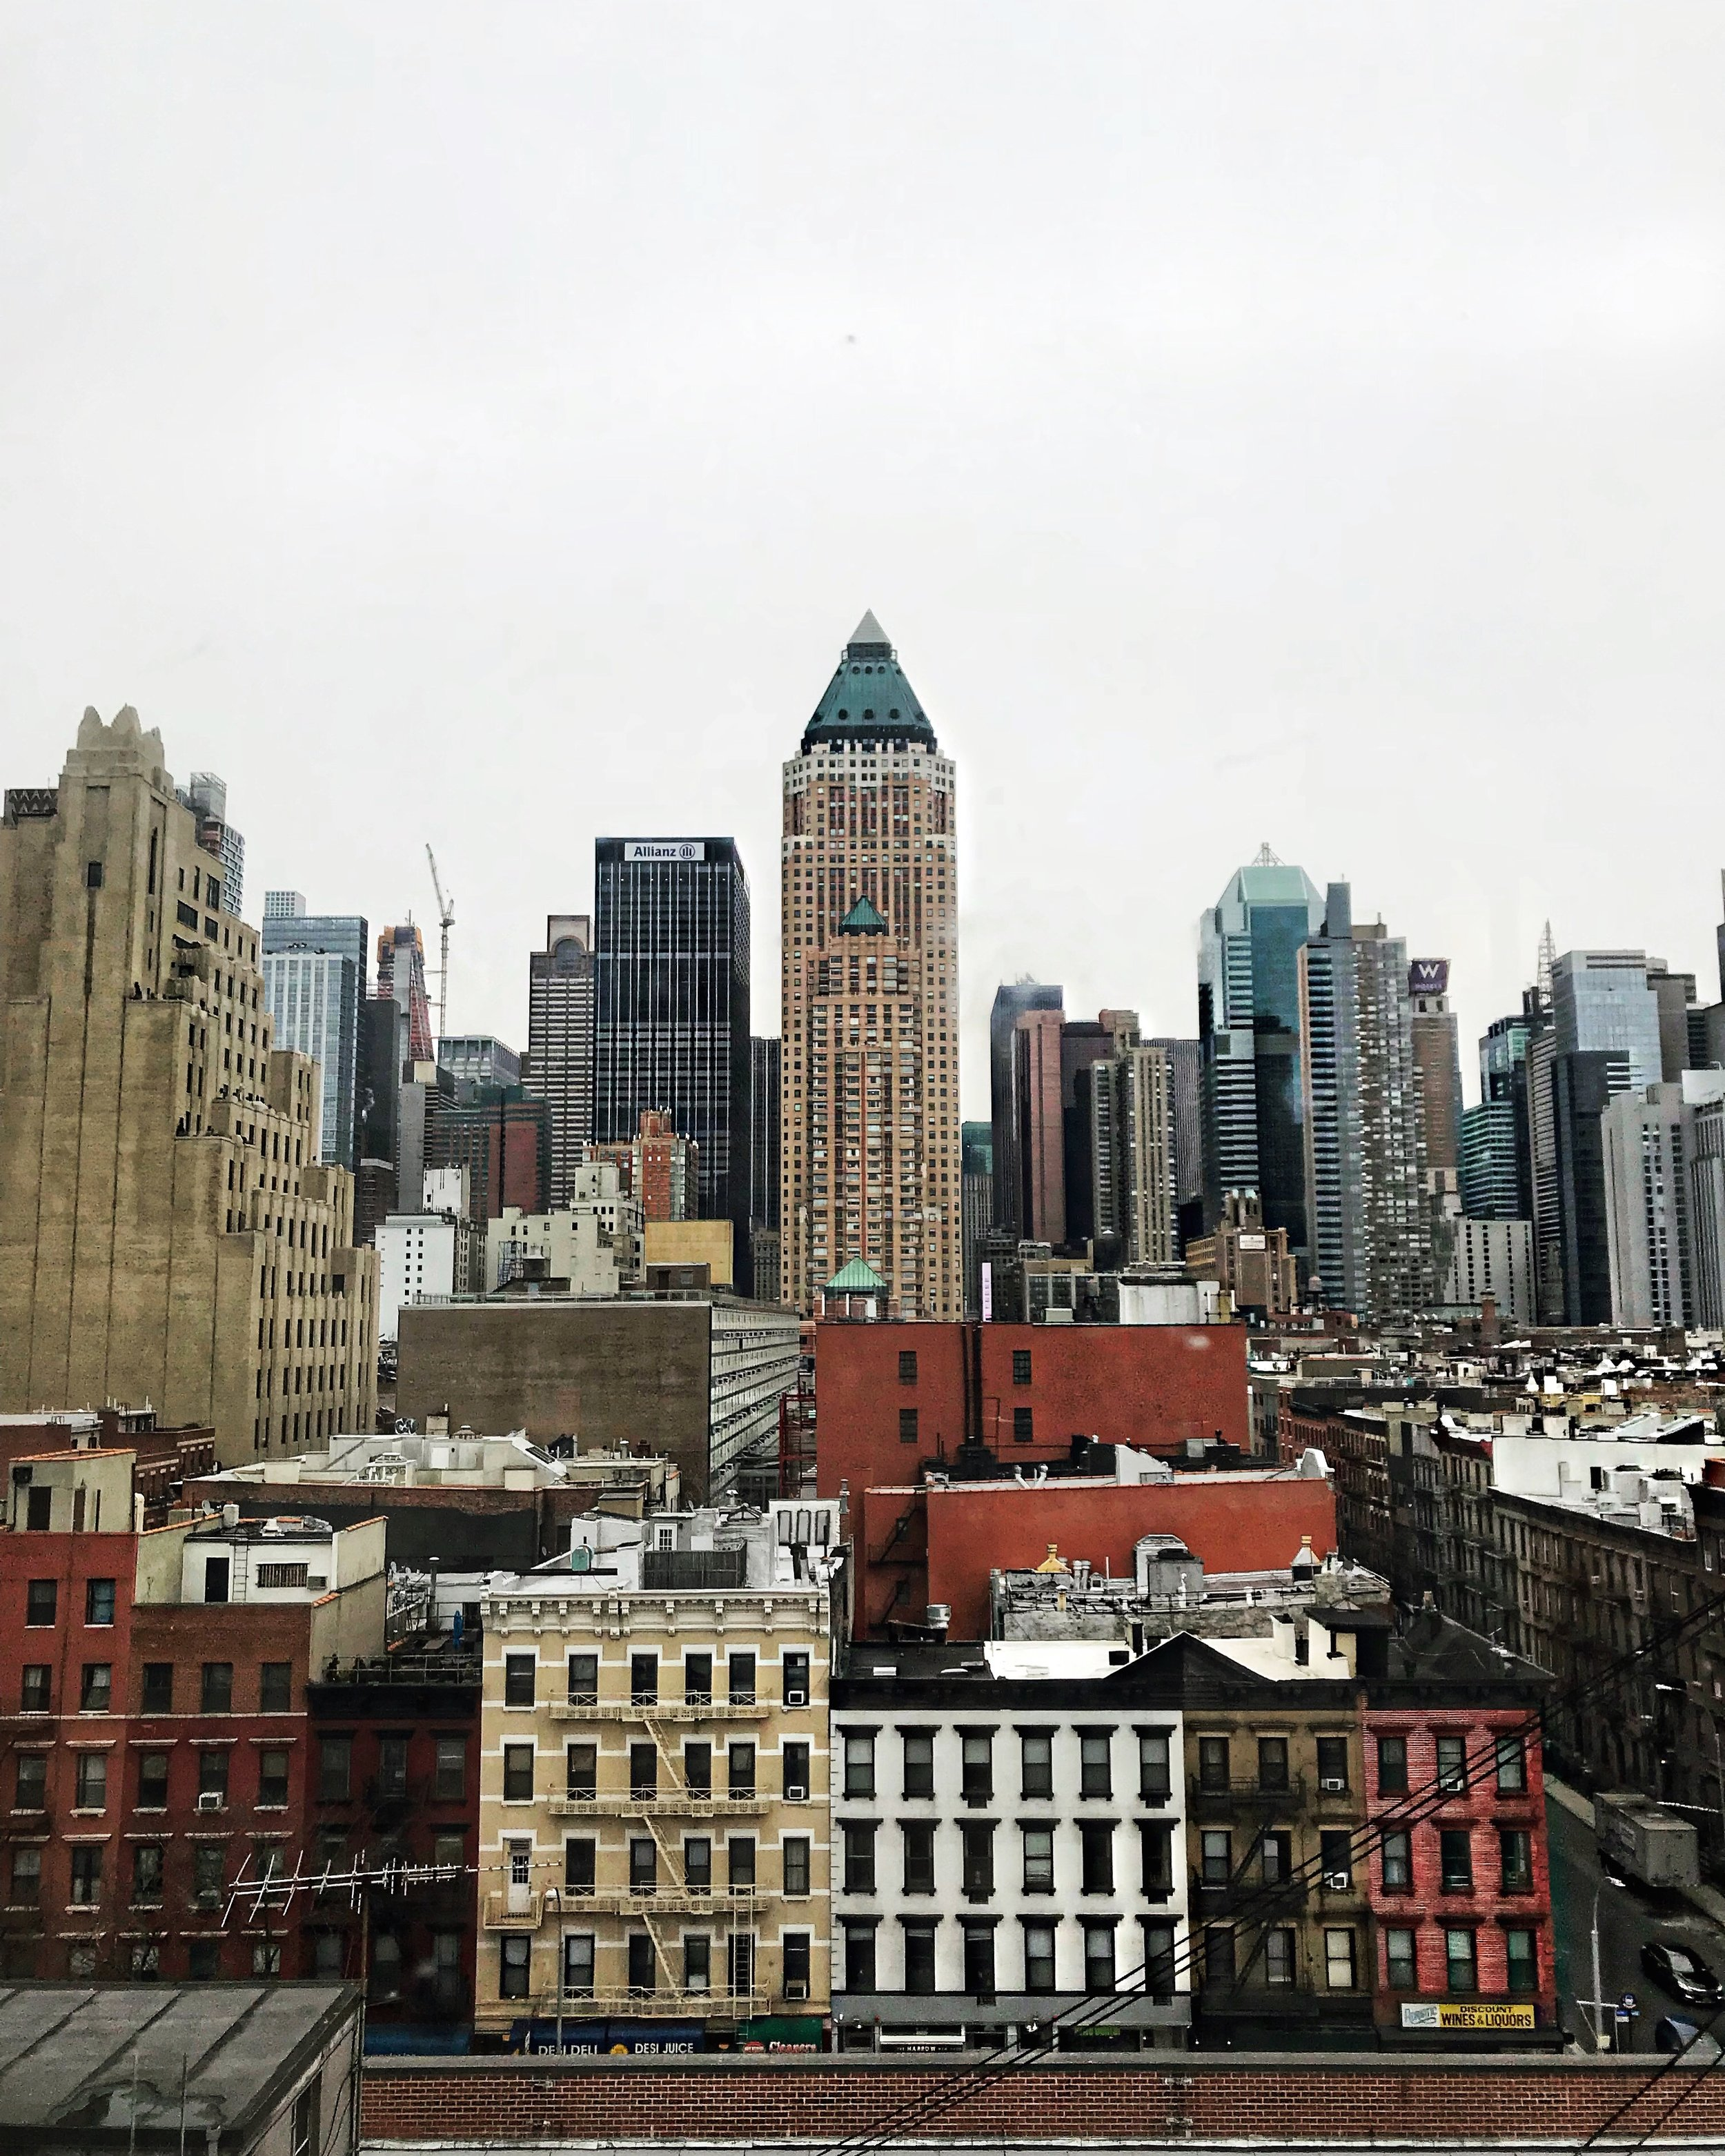 The view from the building where NYFW event happened.